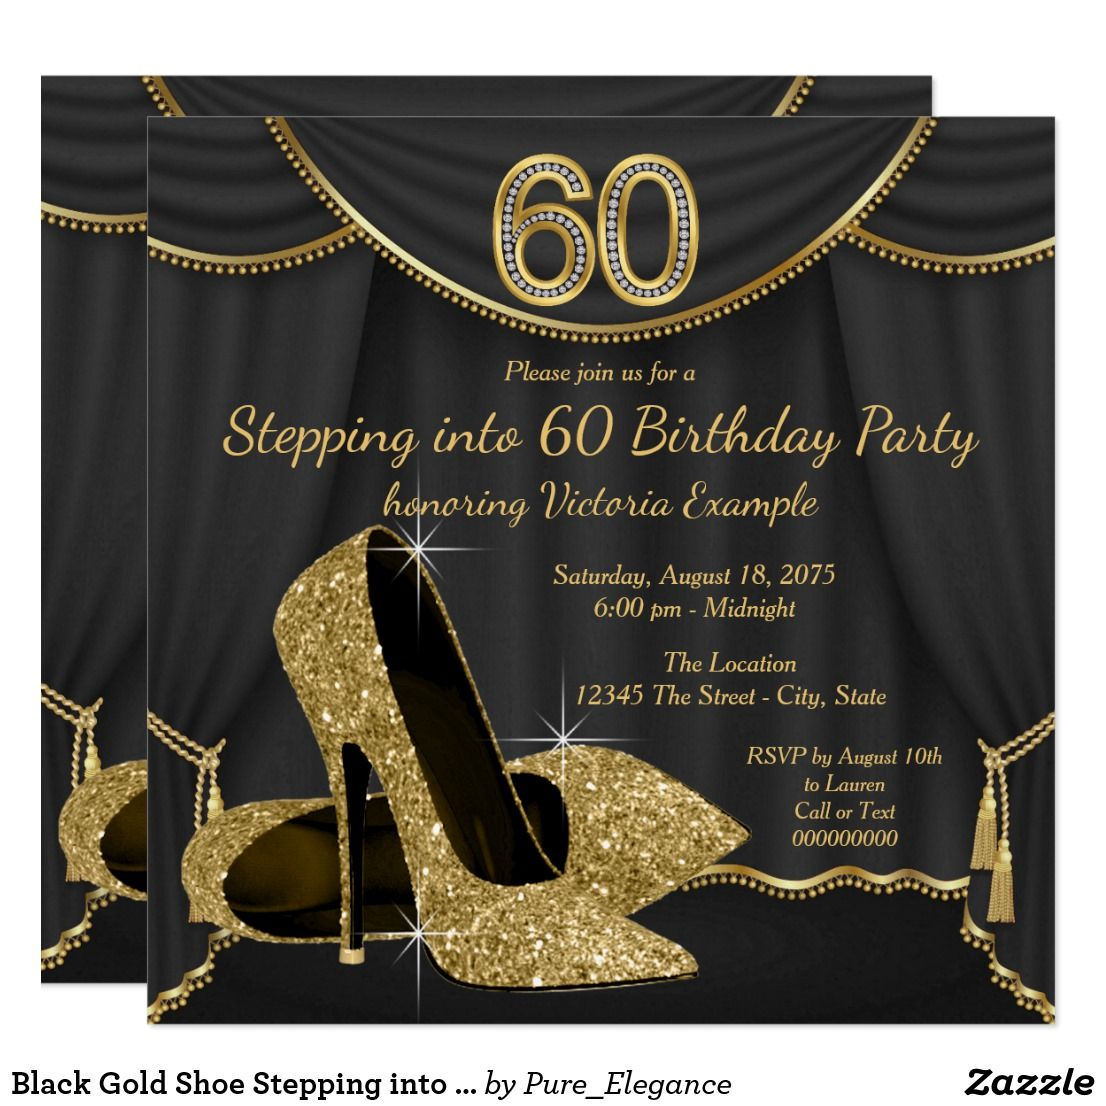 Black Gold Shoe Stepping into 60 Birthday Party Card | Birthdays ...